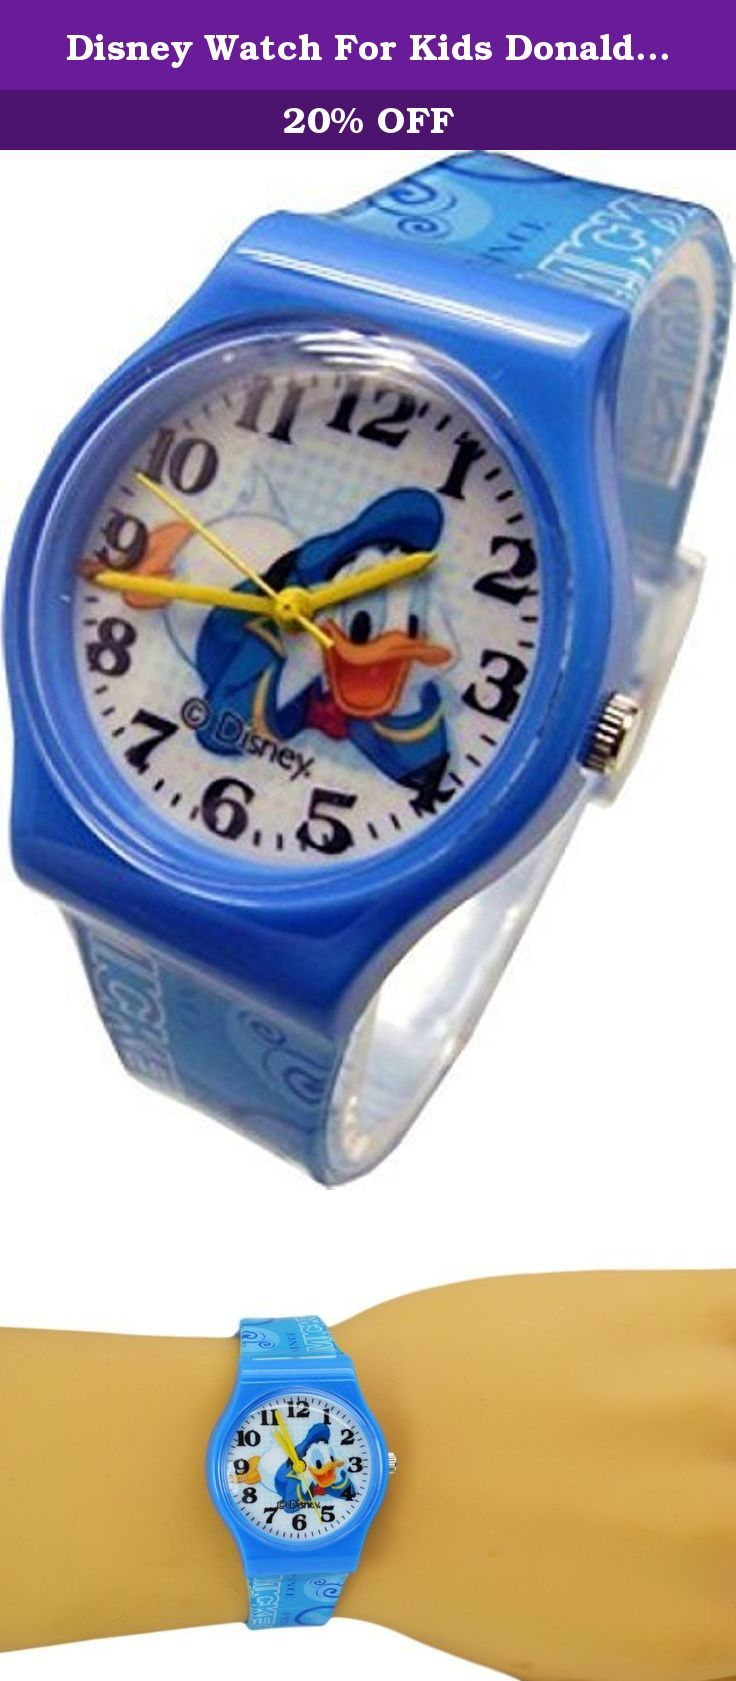 "Disney Watch For Kids Donald Duck..Large Analog Dial. 9""L Band. Disney Watch For Kids Donald Duck.Large Analog Dial. 9""L Band. WITHSTANDS RAIN AND SPLASHES OF WATER BUT NOT SHOWERING OR SUBMERSION."